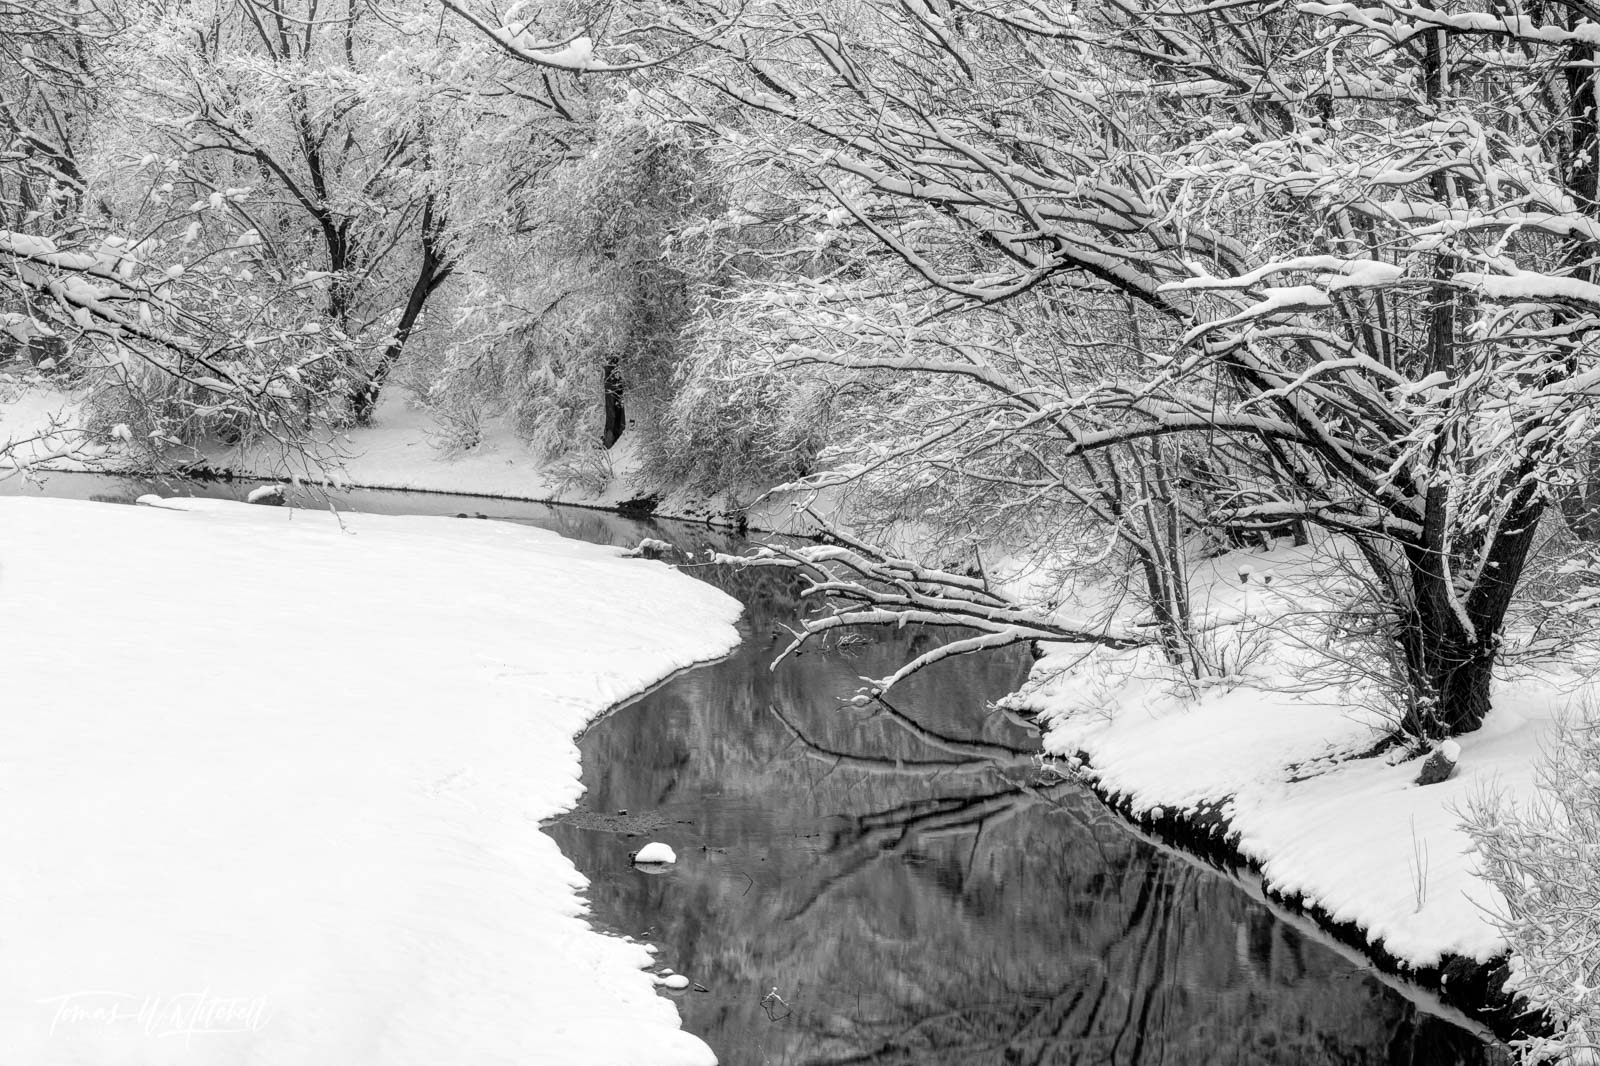 limited edition, fine art, prints, photograph, wheeler historic farm, utah, snow storm, contrast, black and white, stream, reflecting, water, winter, trees, silent series, photo